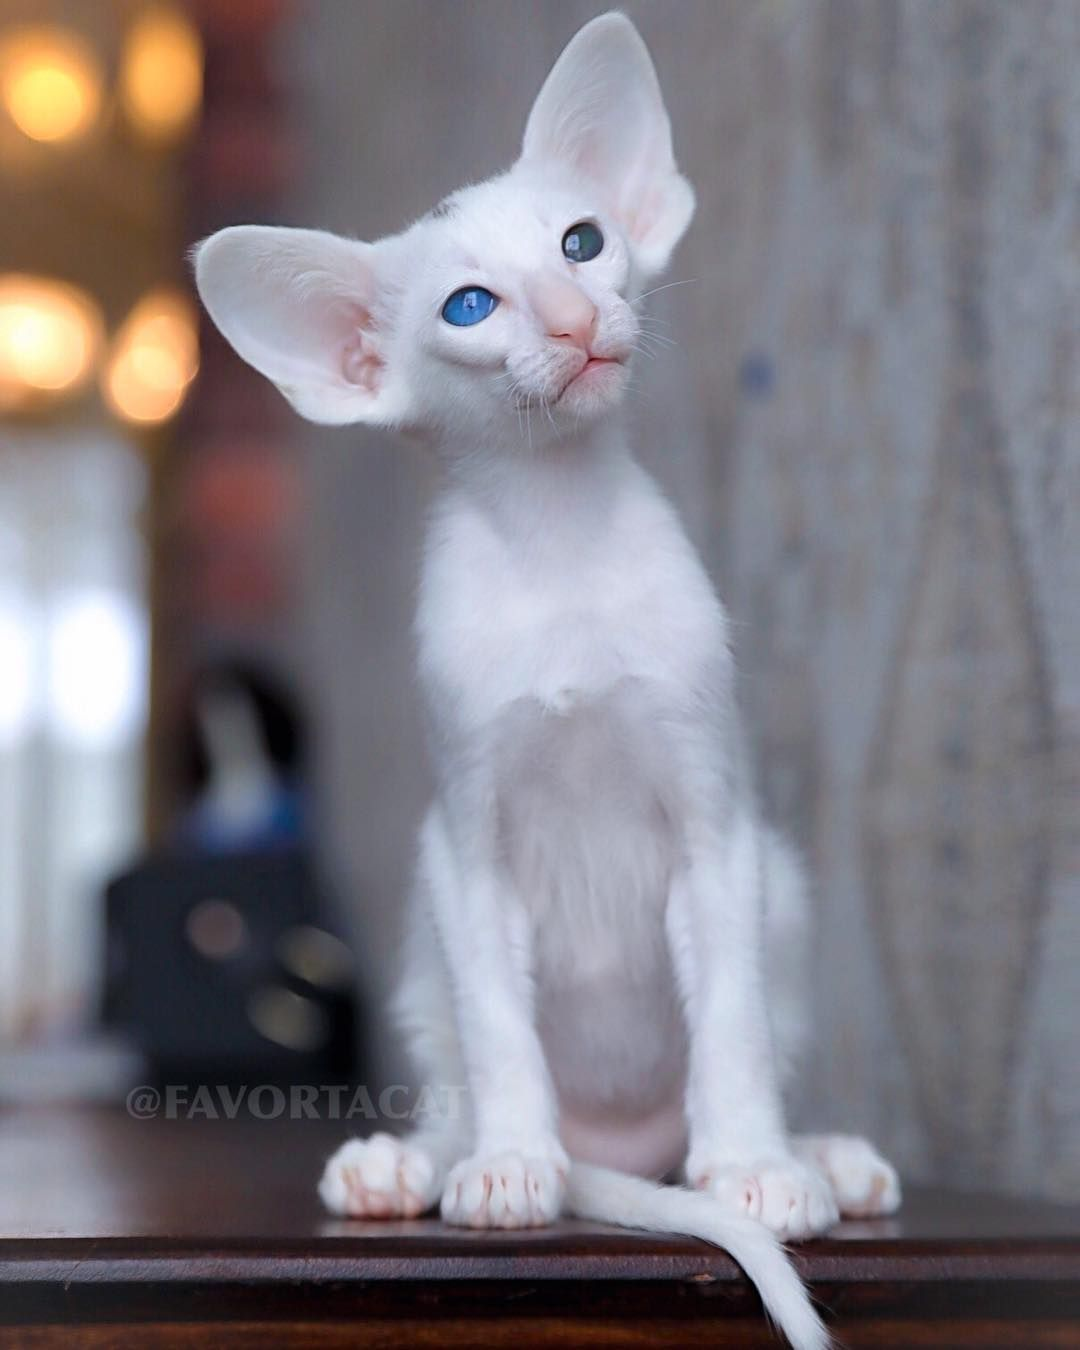 Pin By Invisible Cloack On Oh My Cat Crazy Cats Cute Creatures Cat Pics